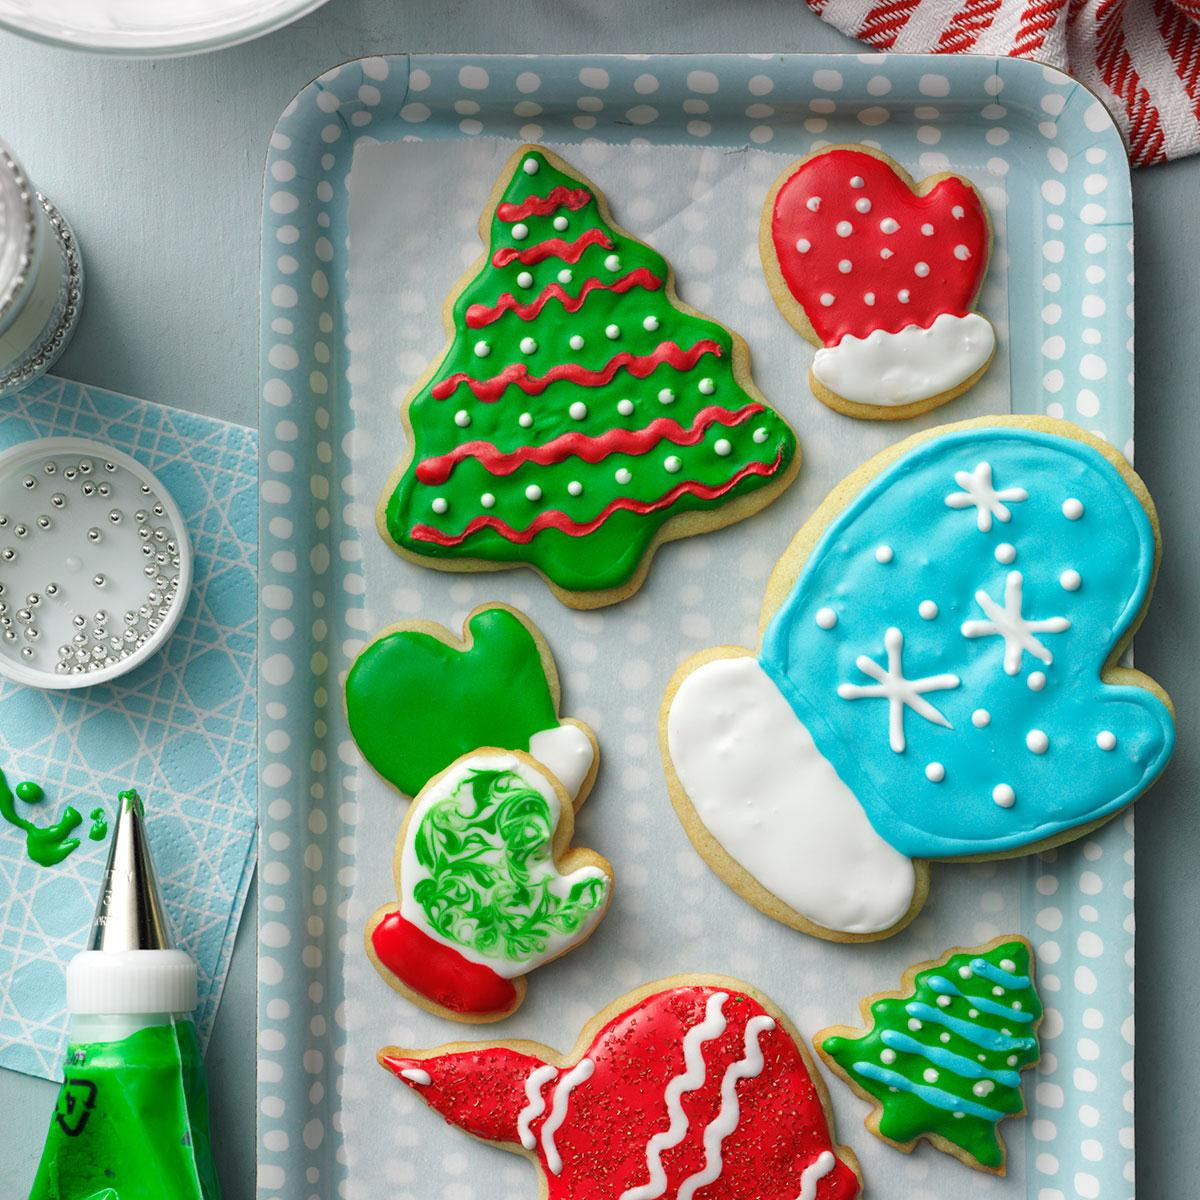 Frosting For Christmas Cutout Cookies  Holiday Cutout Cookies Recipe